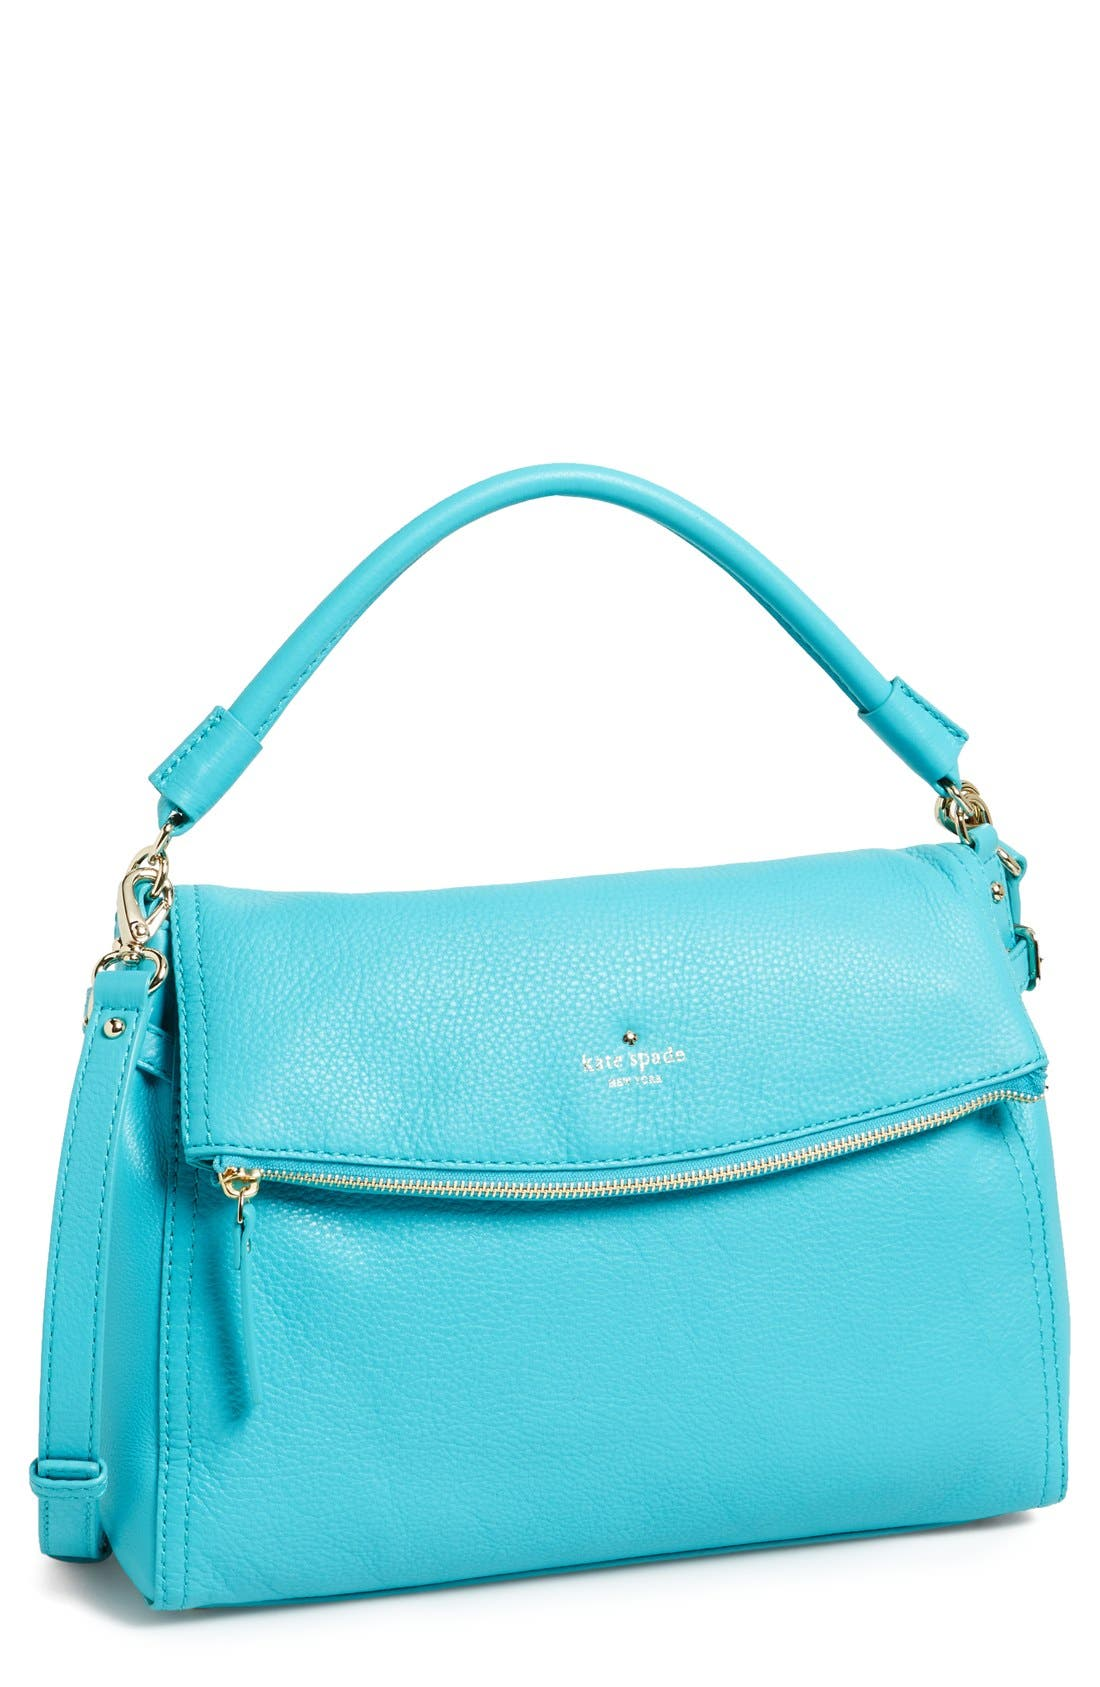 Alternate Image 1 Selected - kate spade new york 'cobble hill - little minka' satchel